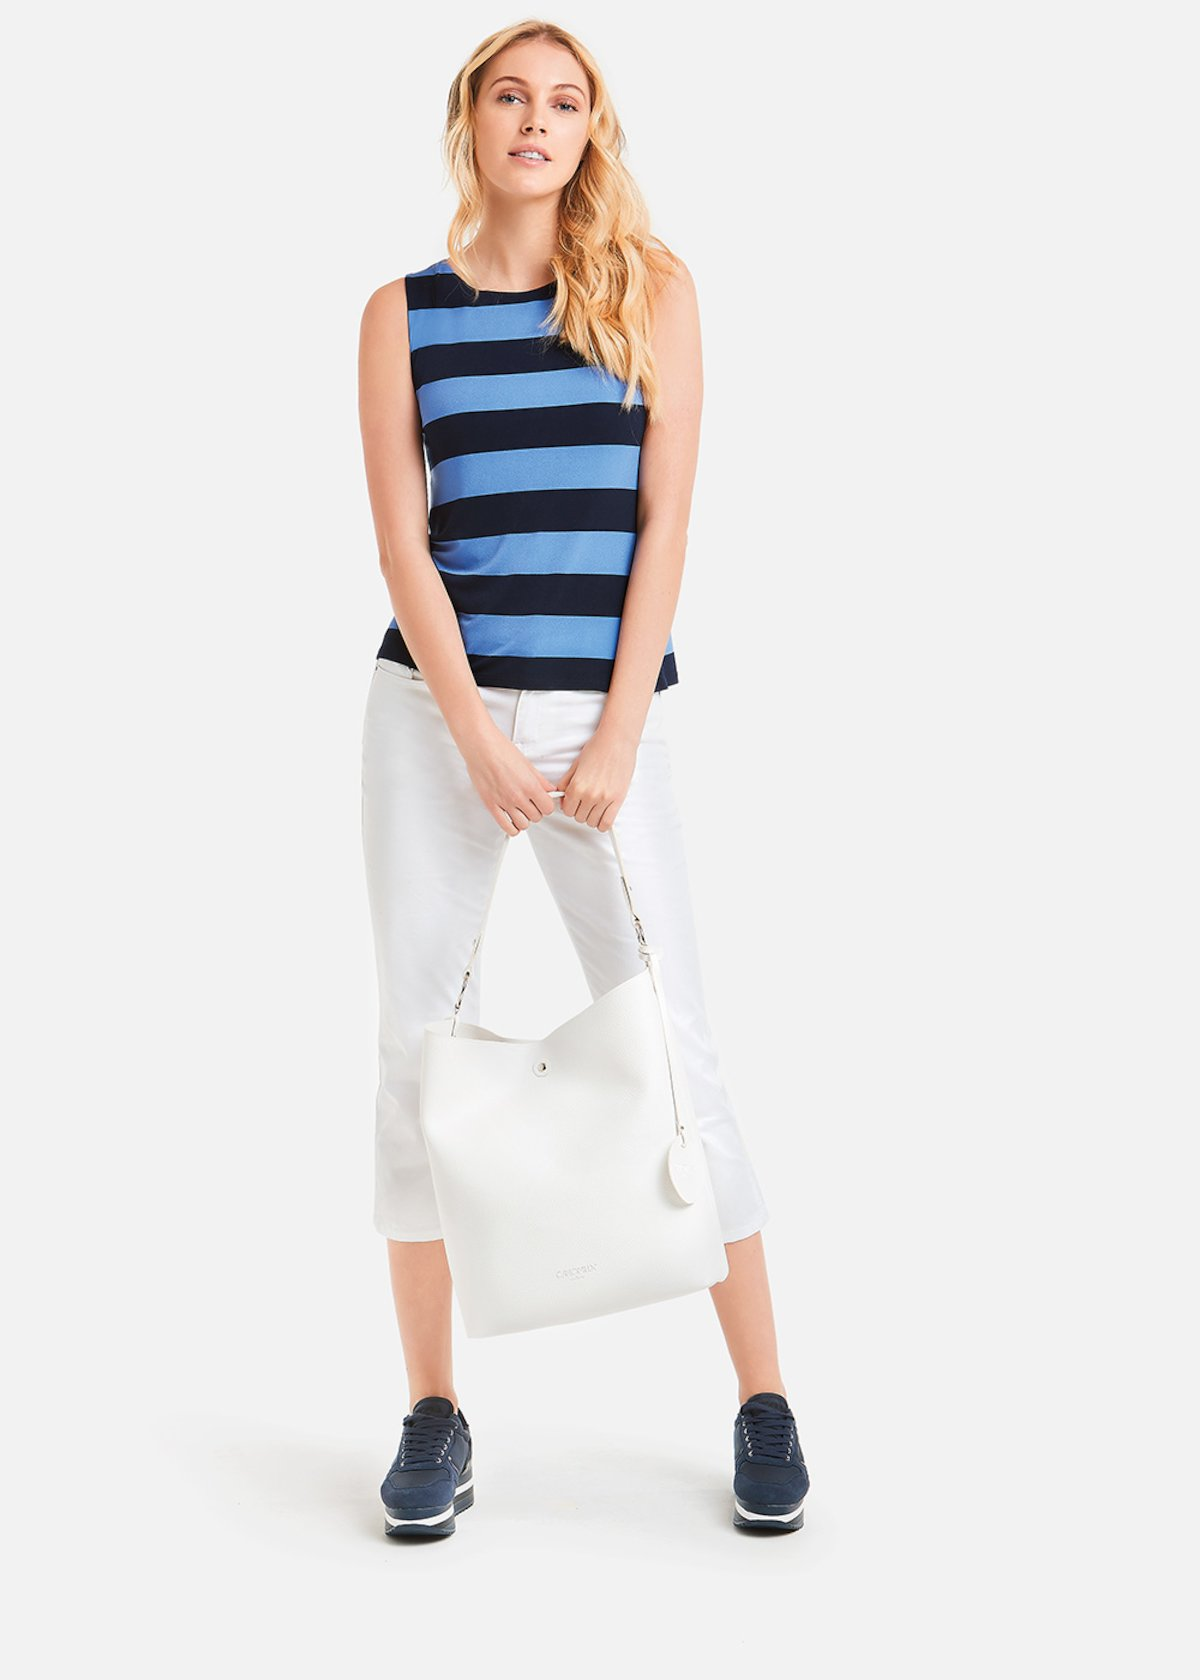 Tailor Top stripe pattern - Medium Blue / Divino Stripes